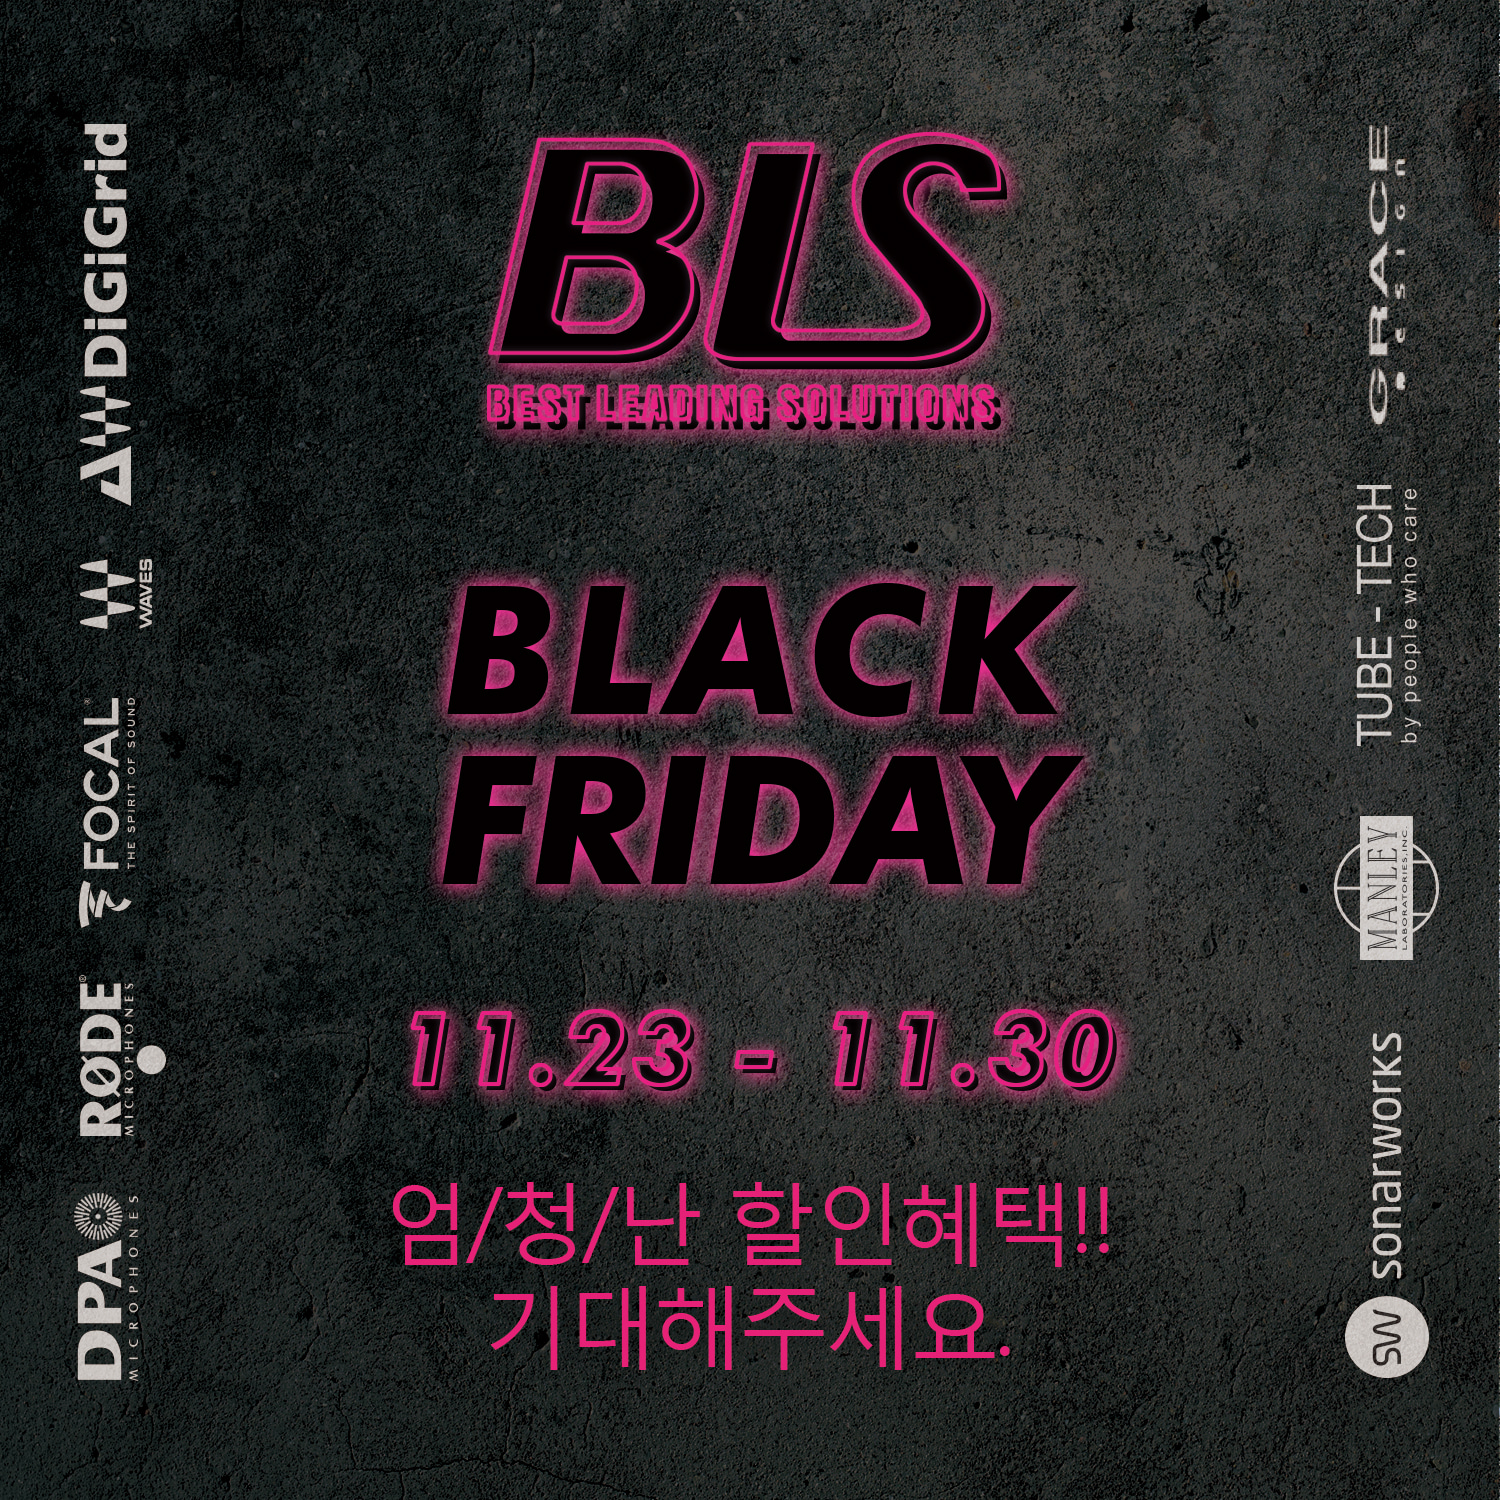 171120_black_friday_bls.jpg